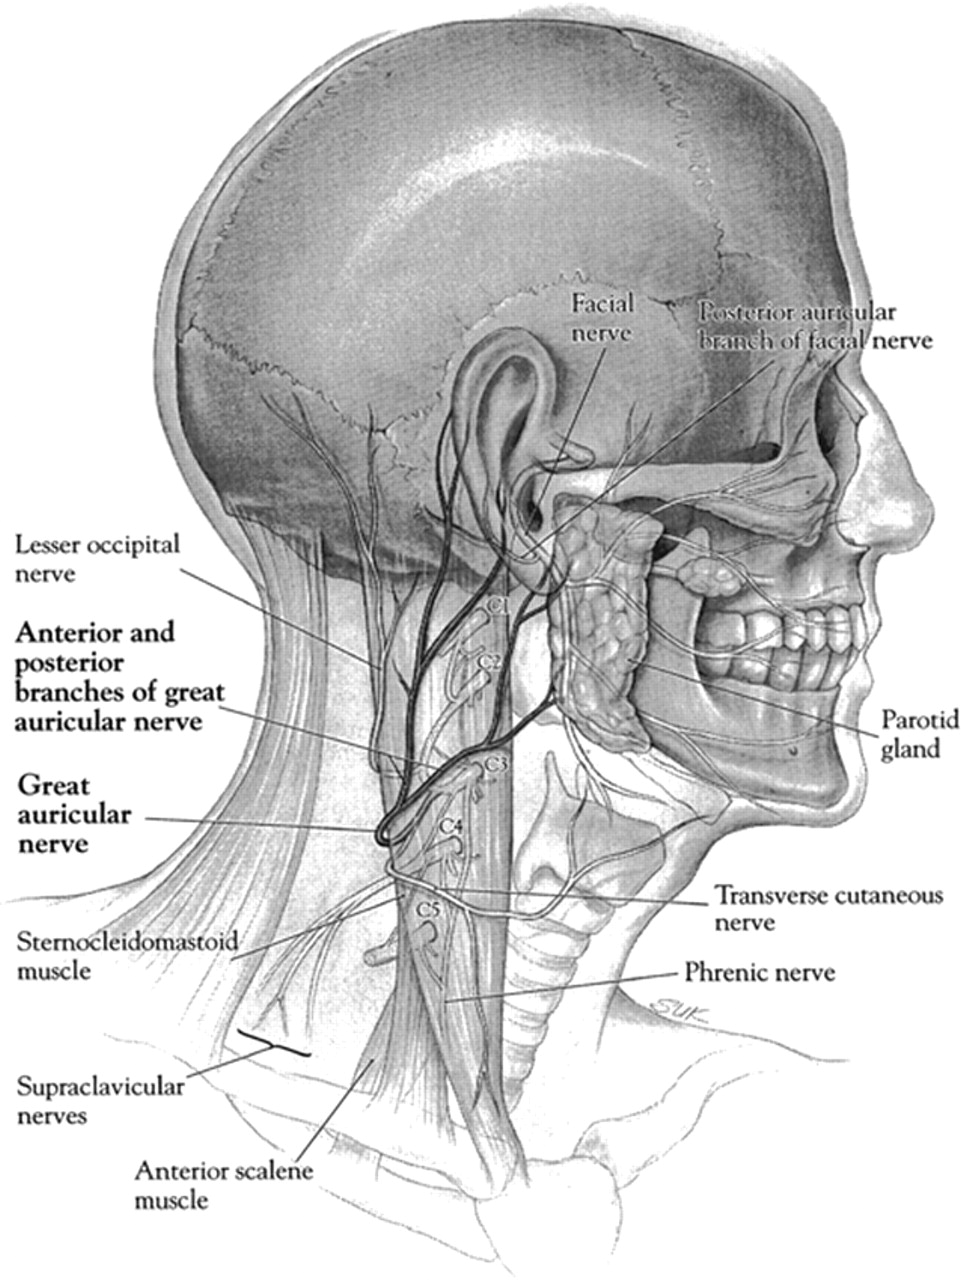 Great Auricular Nerve: Anatomy and Imaging in a Case of Perineural ...